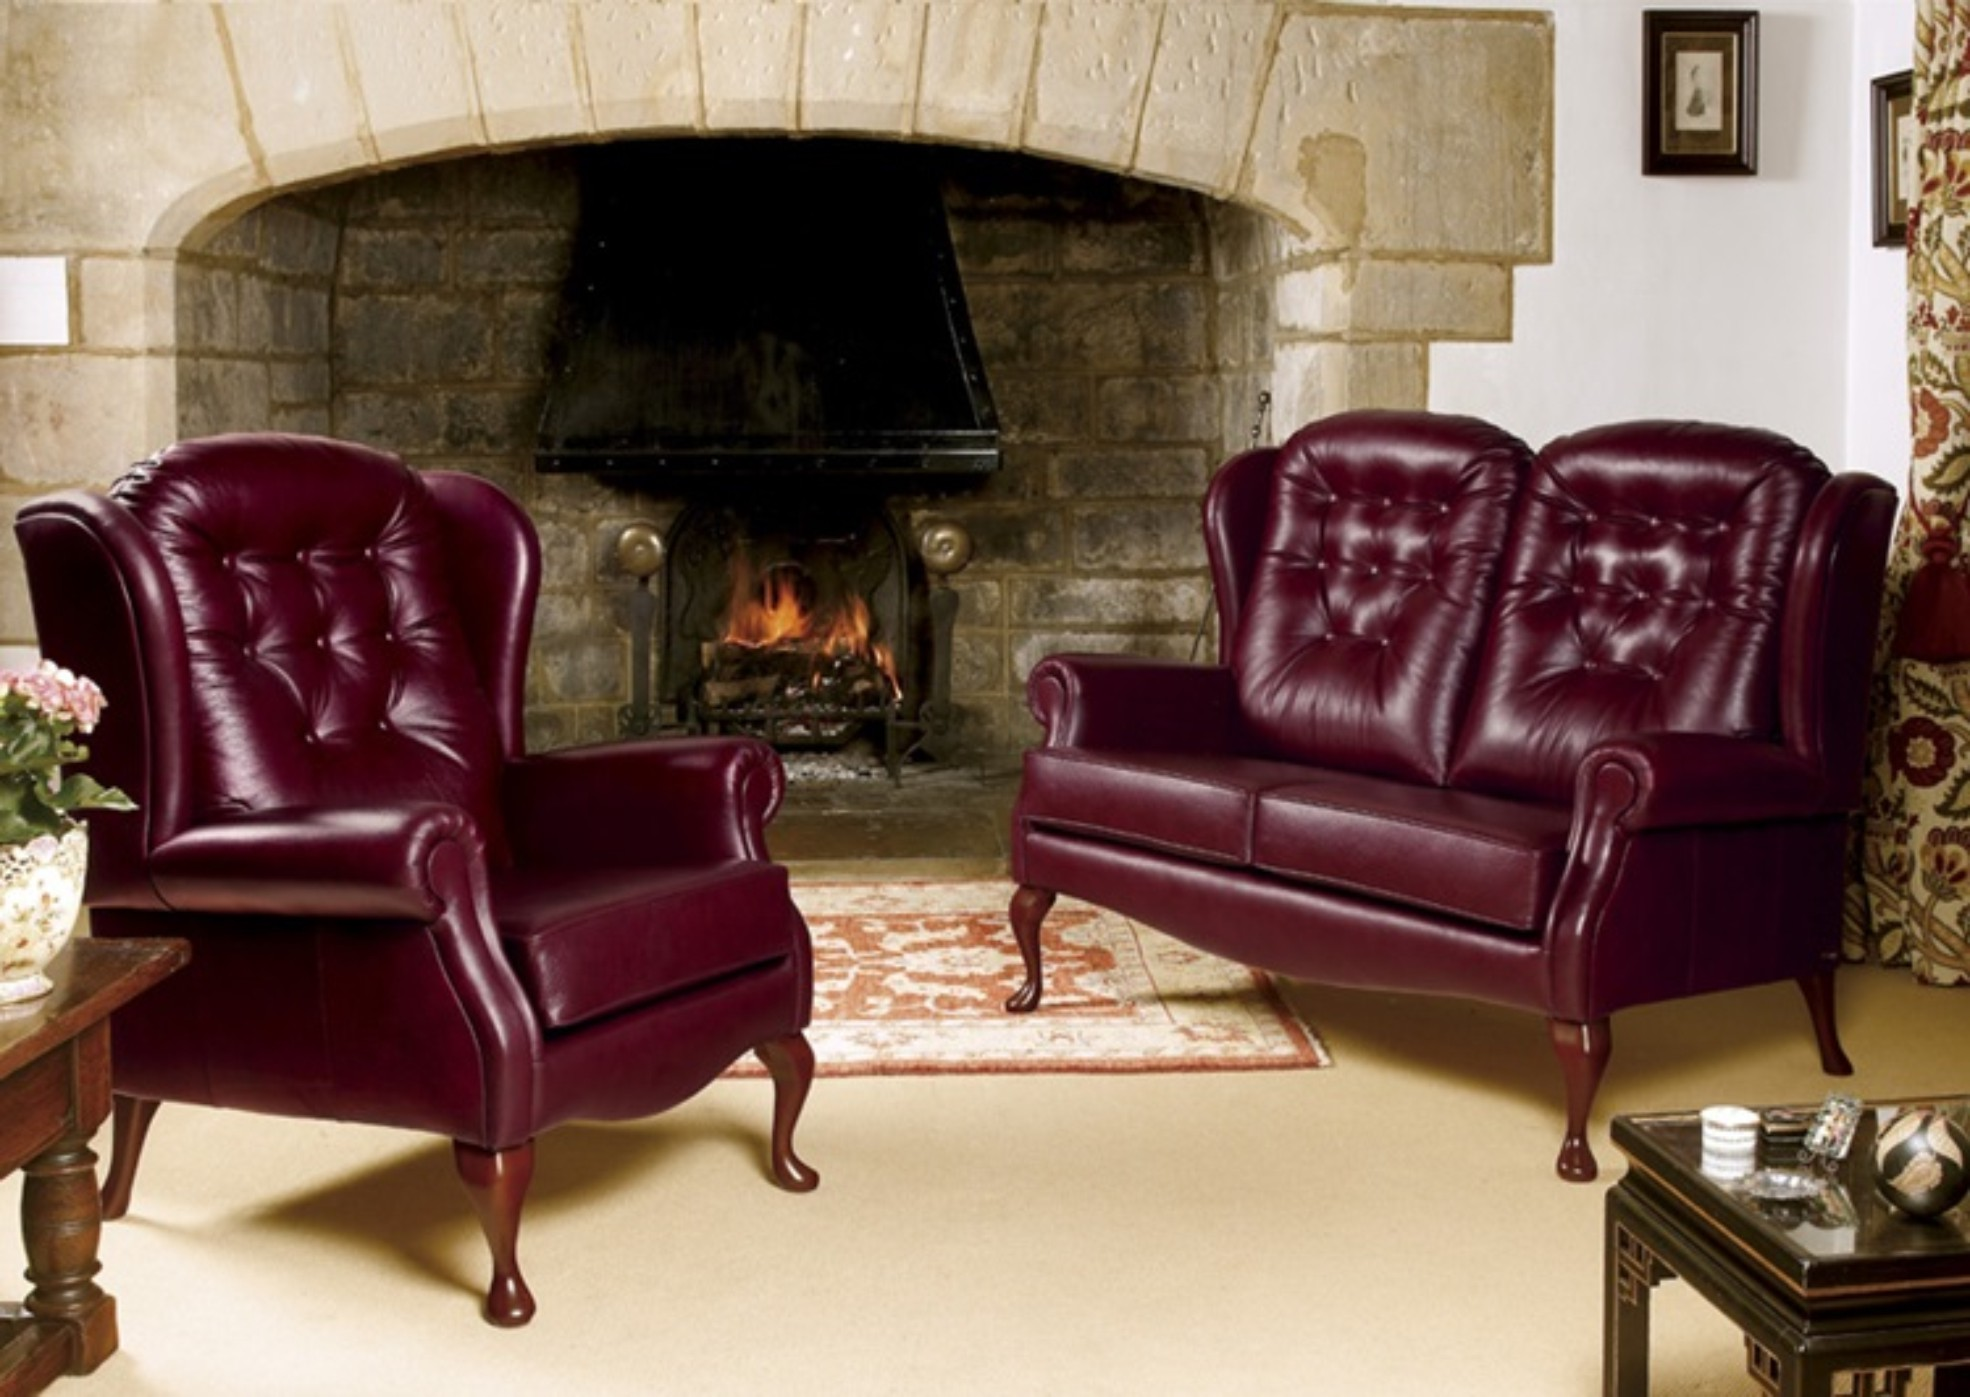 Lynton Standard Seat Fireside Chair and 2 Seater